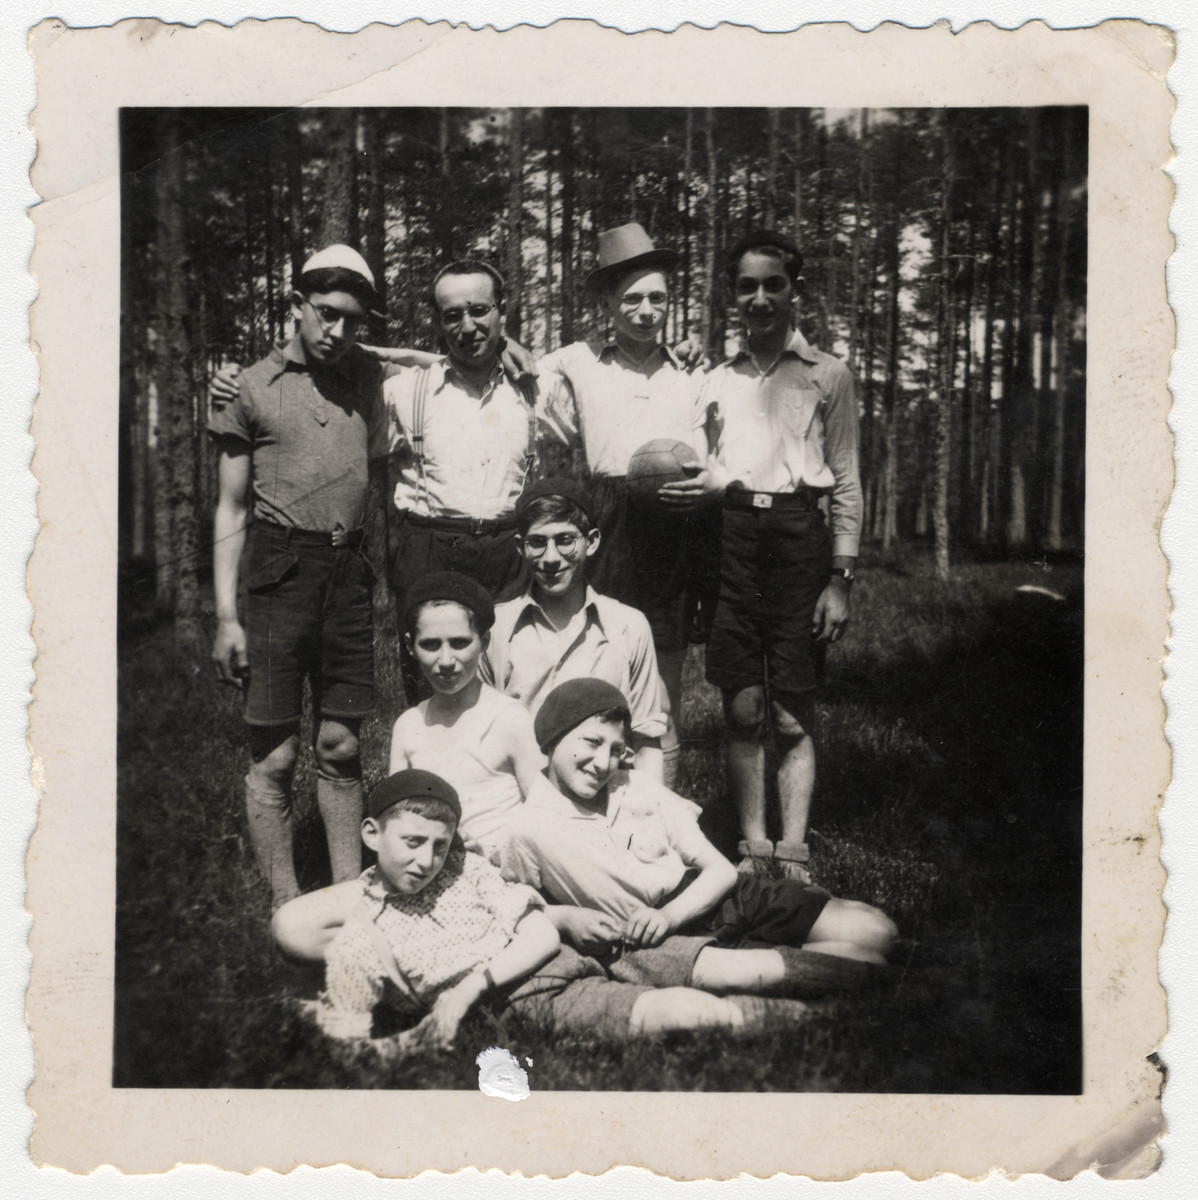 Members of the religious youth group, Ezra, go for an excursion outside of Nuremberg, Germany.  Pictured are Meir Schwarz, front row, left.  Also pictured are Shmuel Ediman, David Klugman, Adolf Berenbaum, Raphael Klugman and Aaron Cohen.